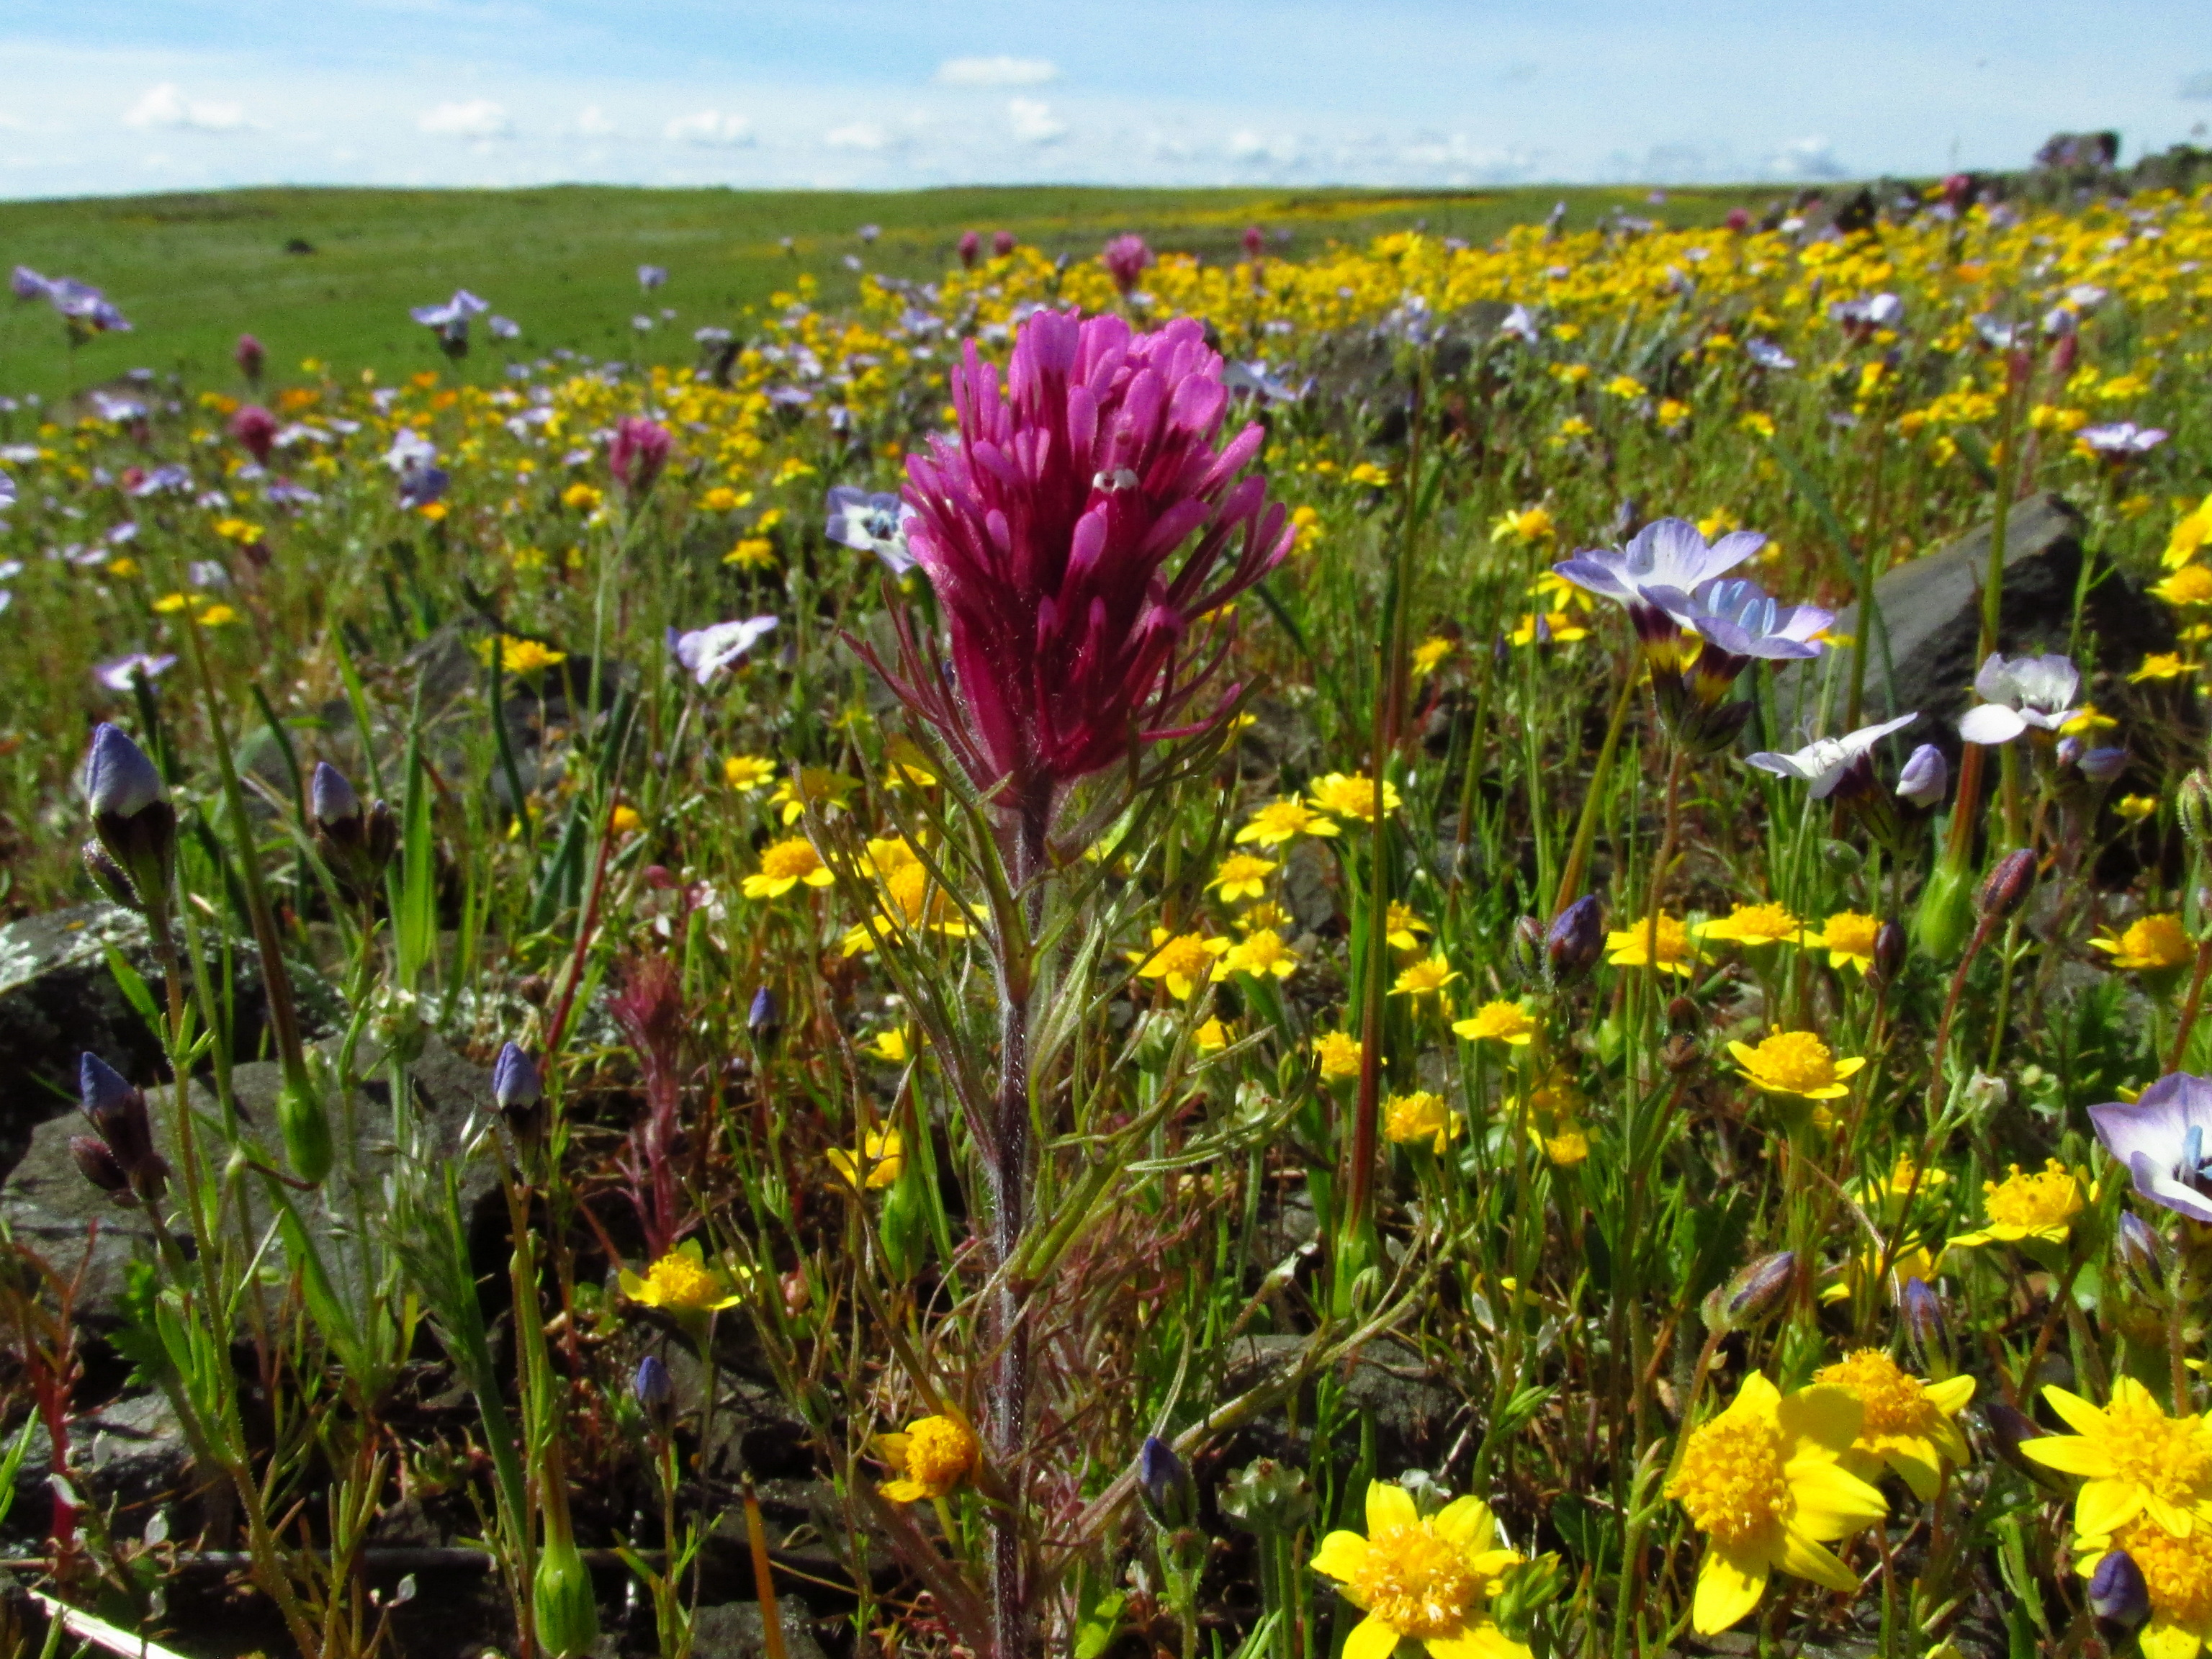 Wildflowers at Table Mountain Jenny Gremer